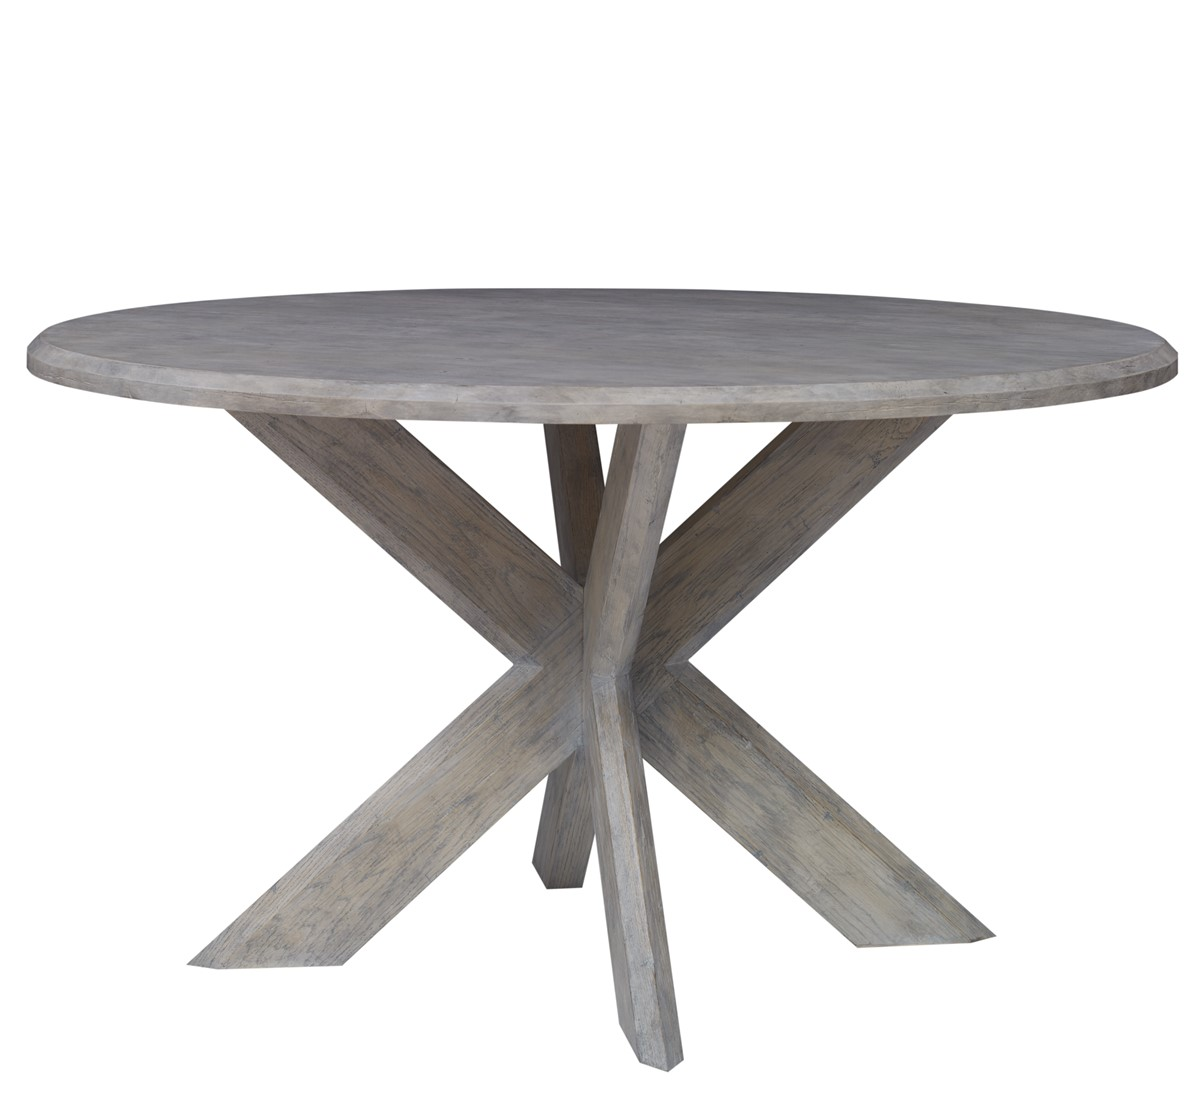 Terrific Hayden Dining Table Wood Top 1812 18 Chaddock Collection Ibusinesslaw Wood Chair Design Ideas Ibusinesslaworg